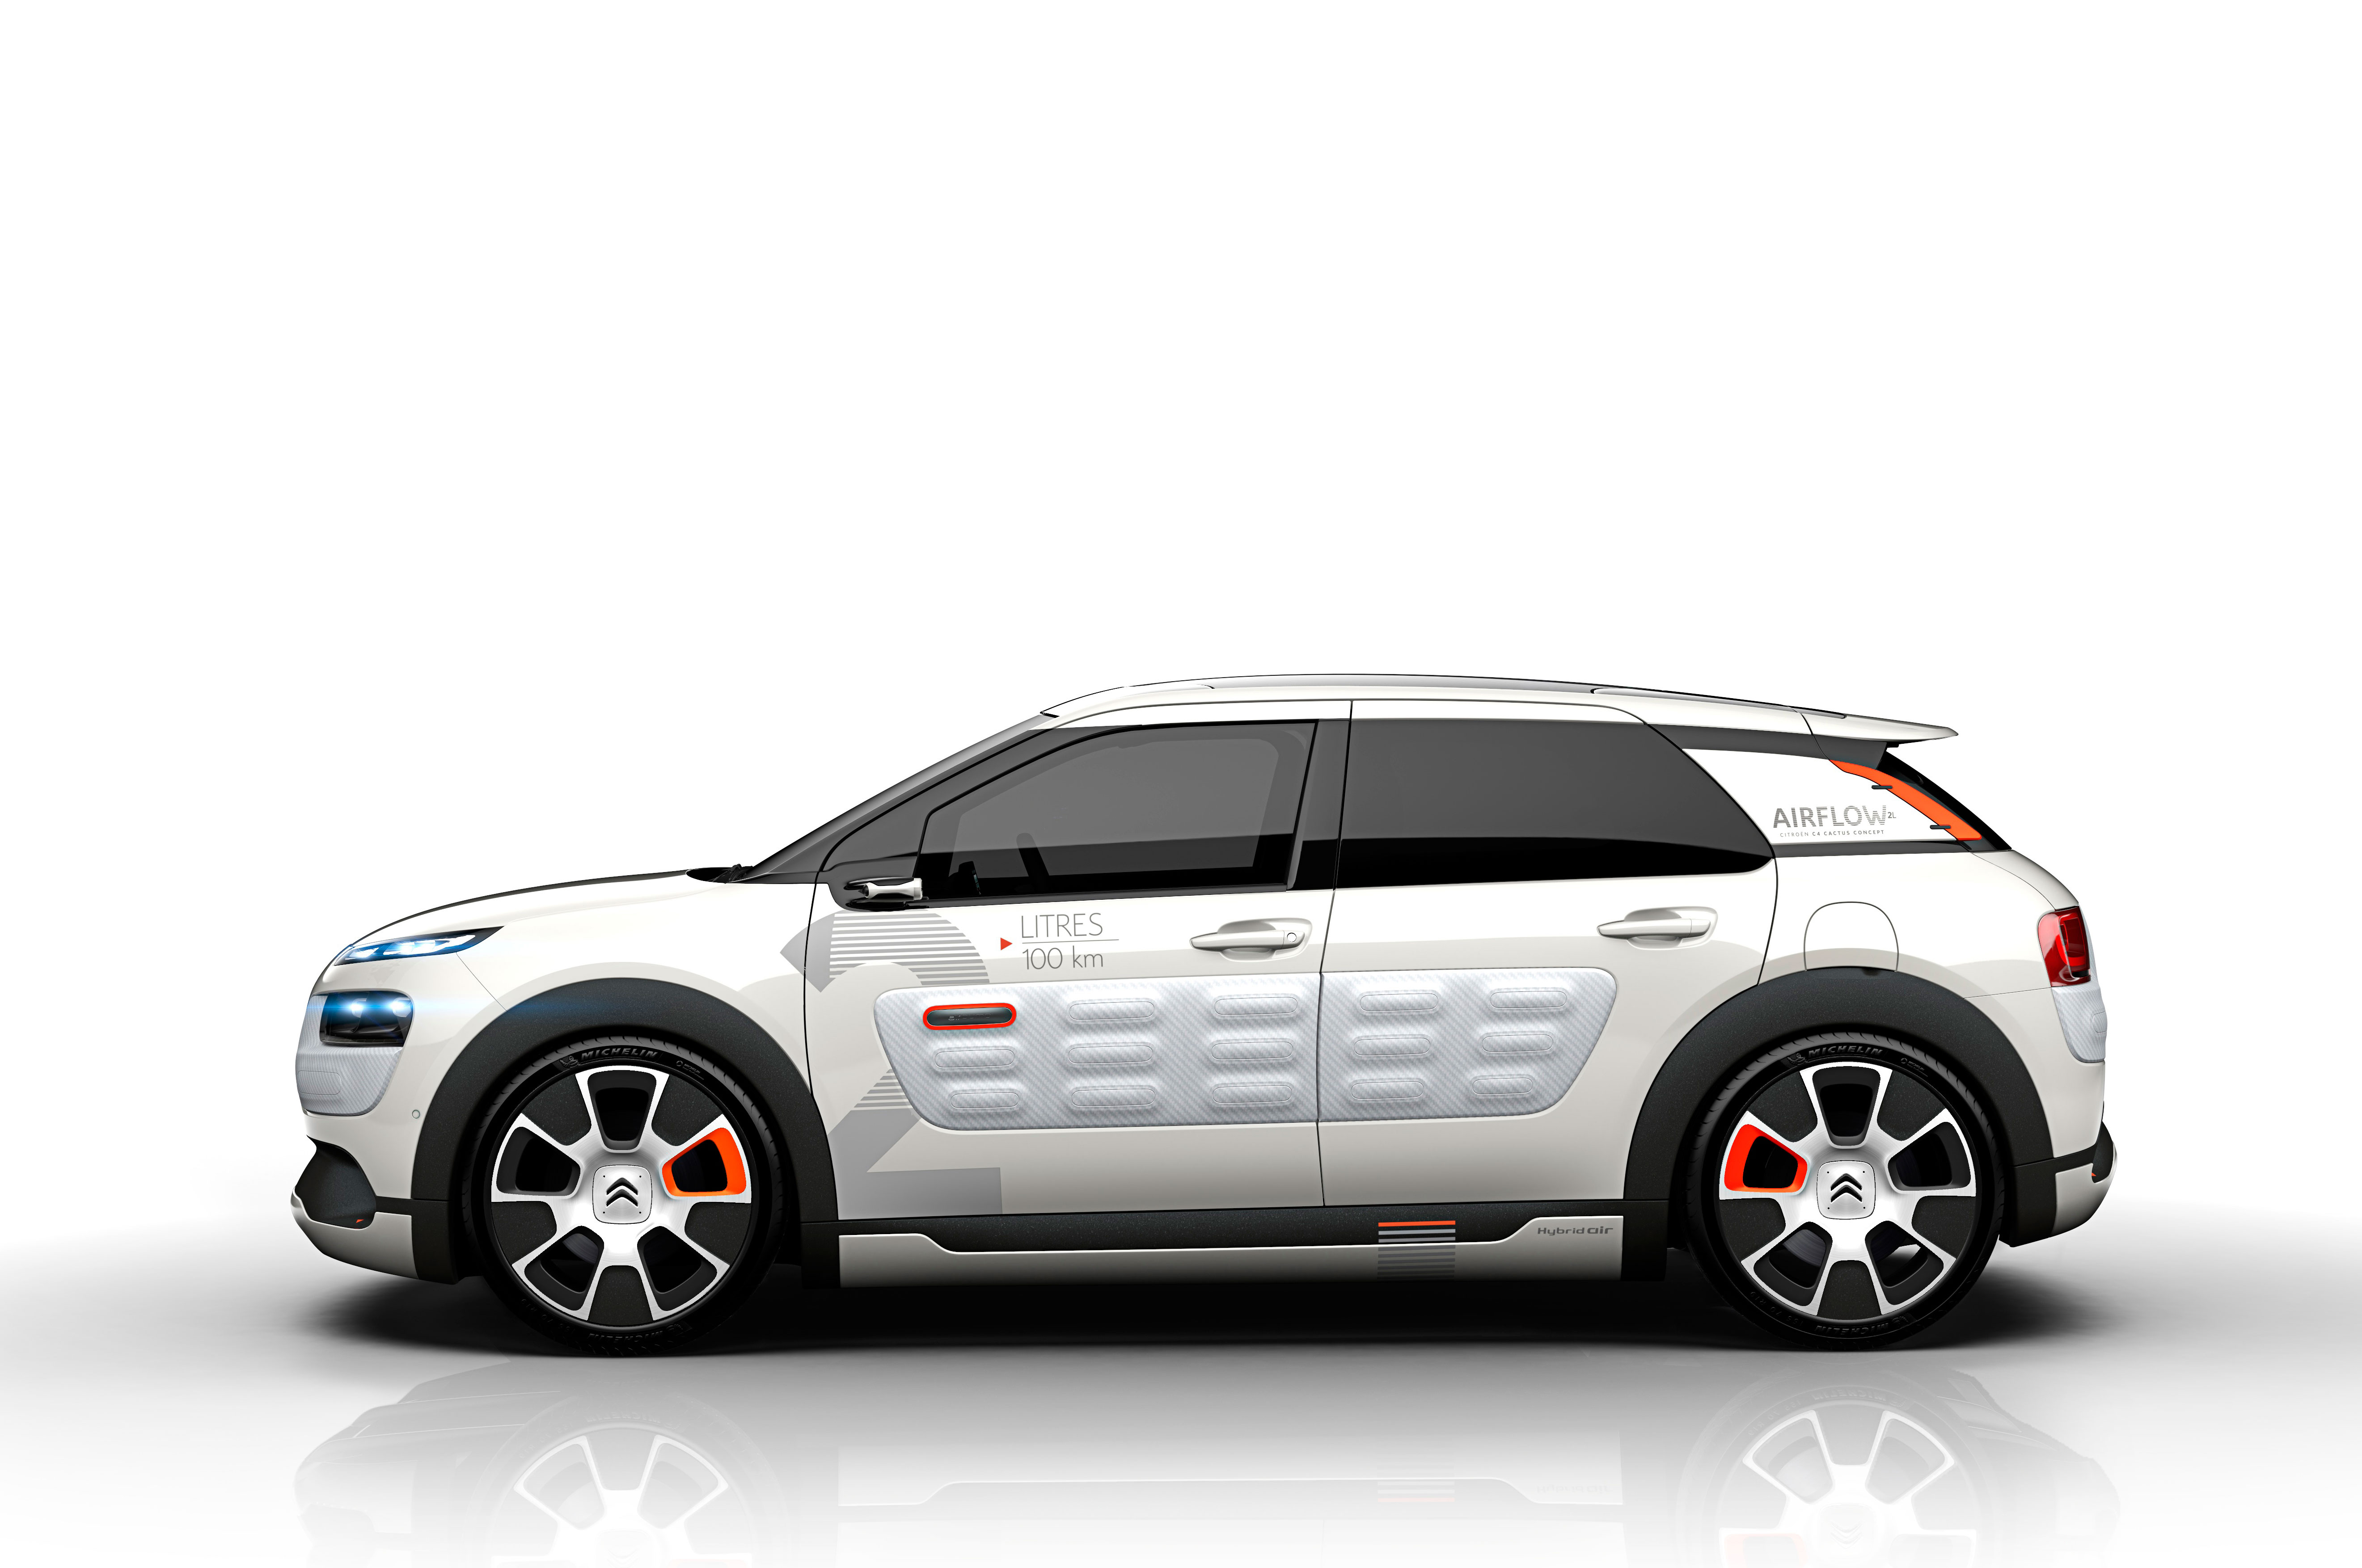 Citroen C4 Cactus hd specifications